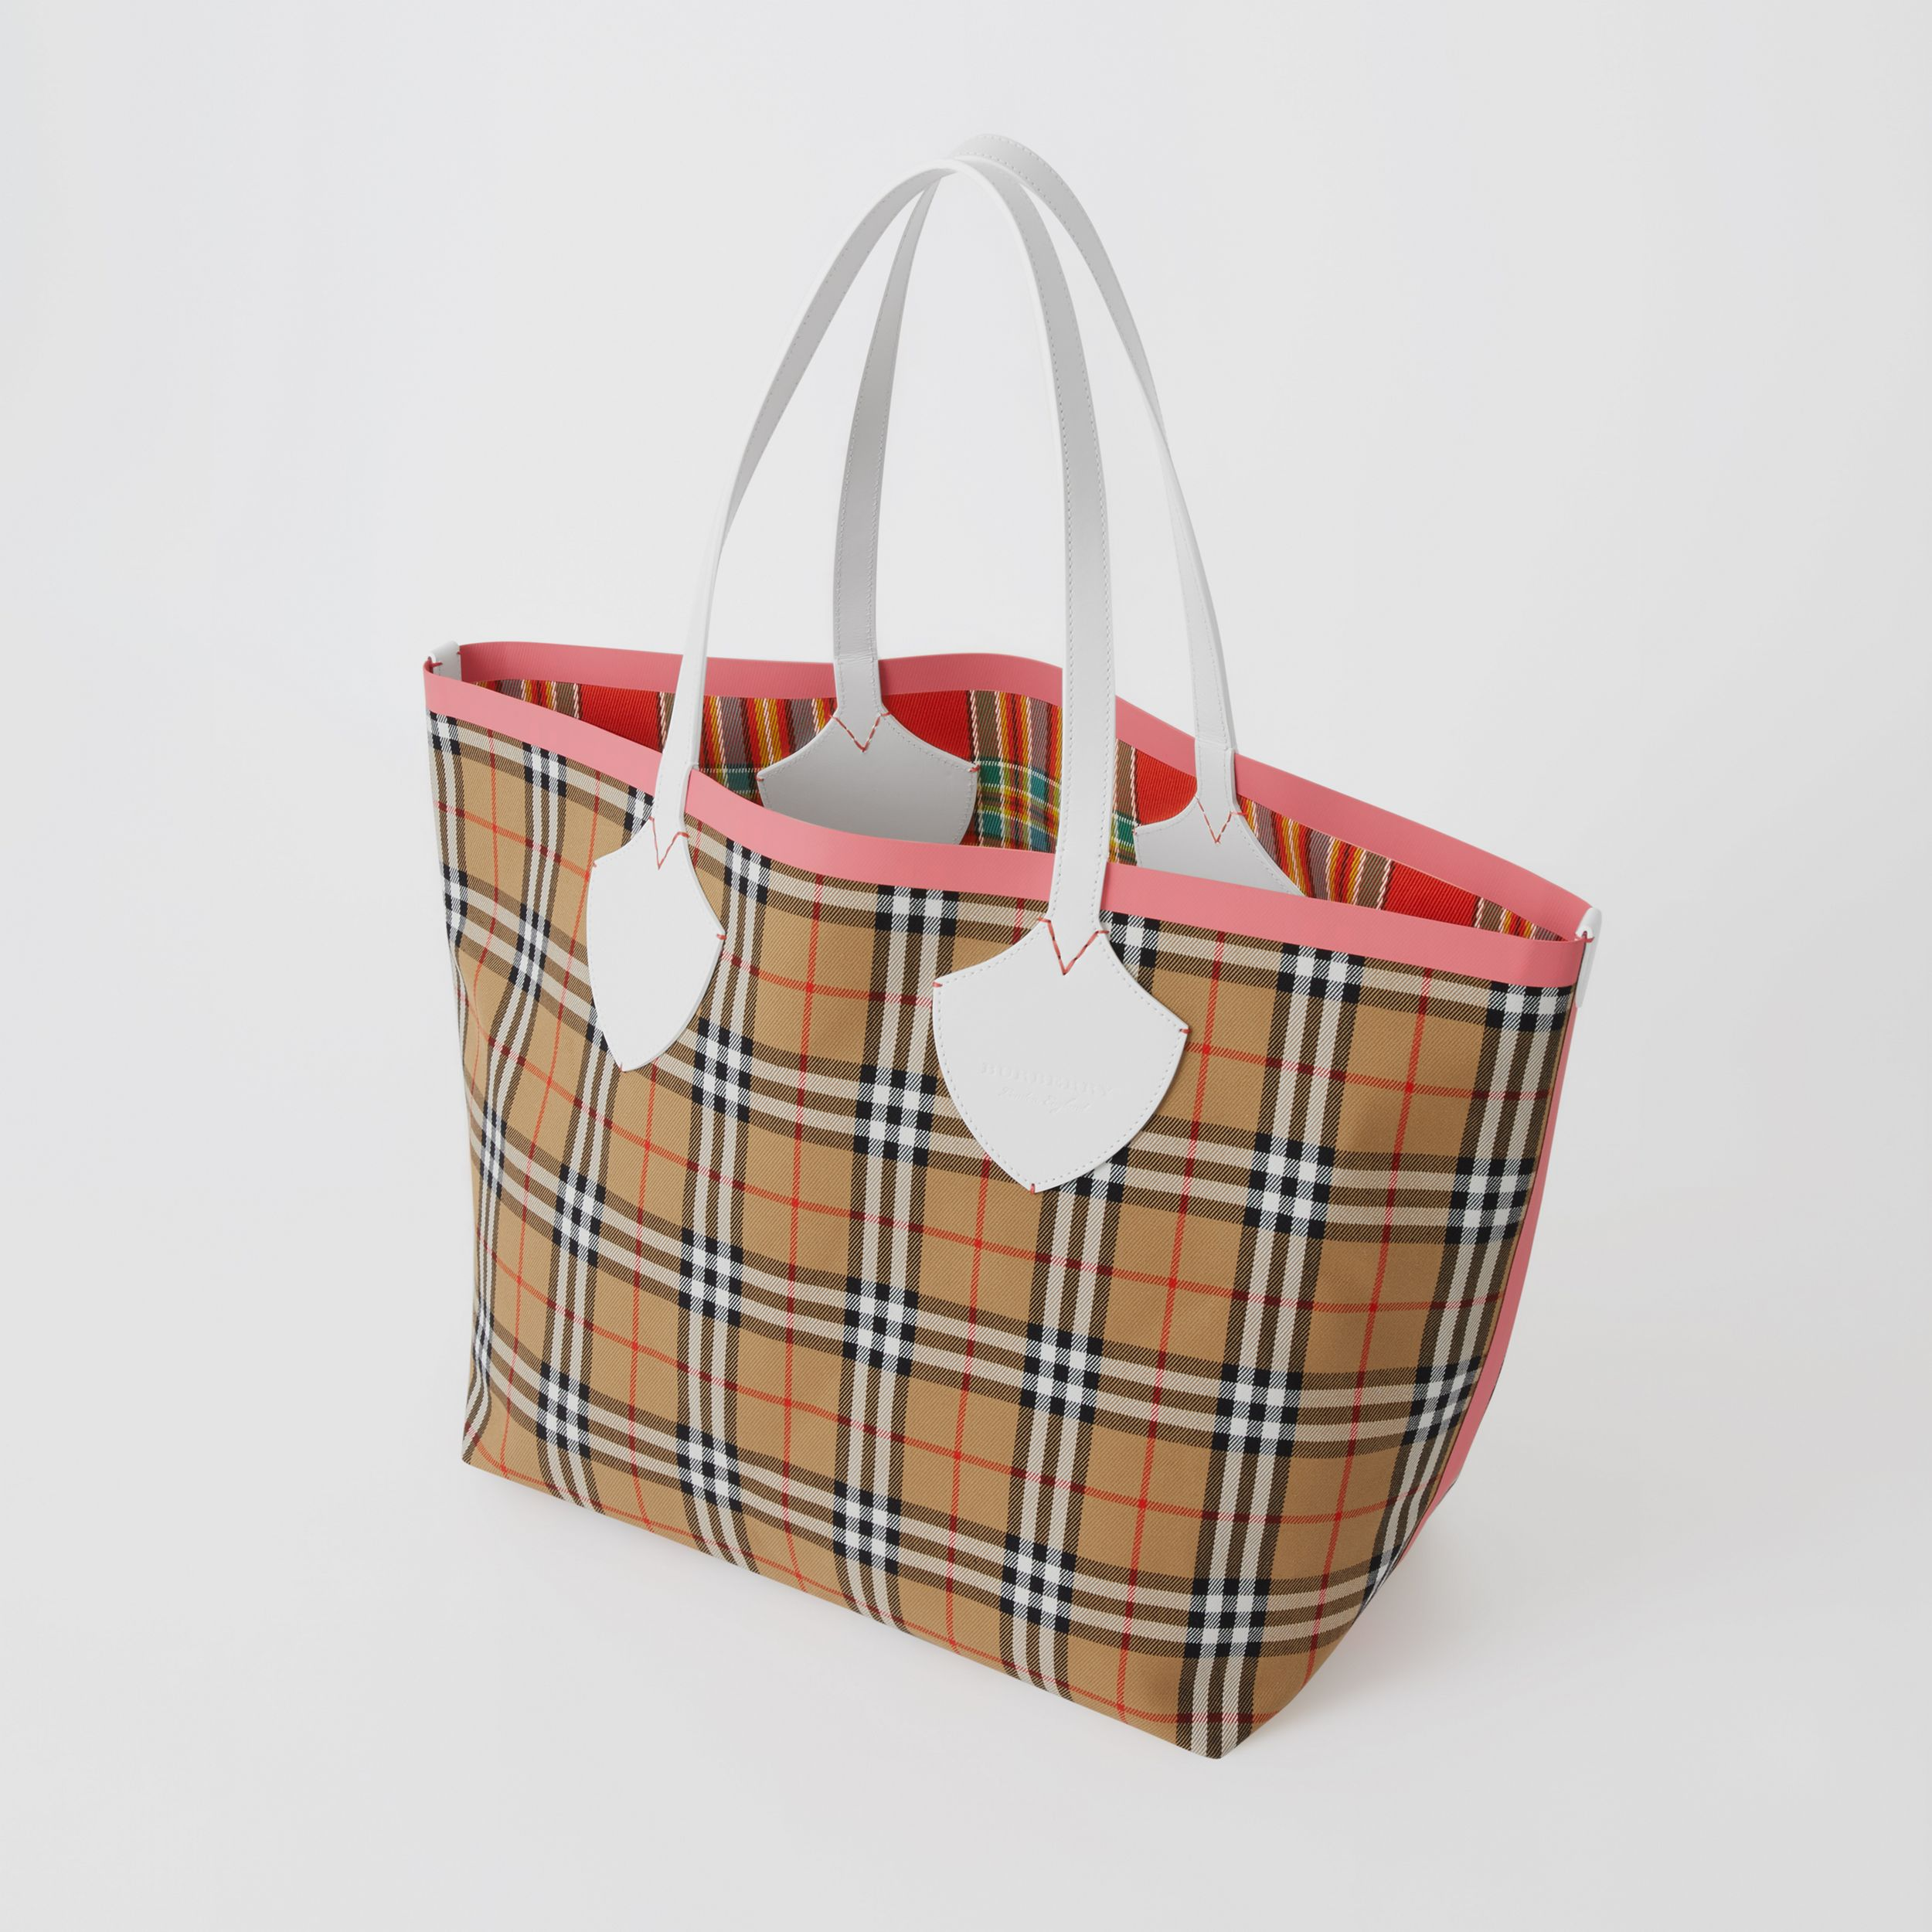 The Giant Reversible Tote in Vintage Check in Chalk White/bright Coral Pink - Women | Burberry - 3